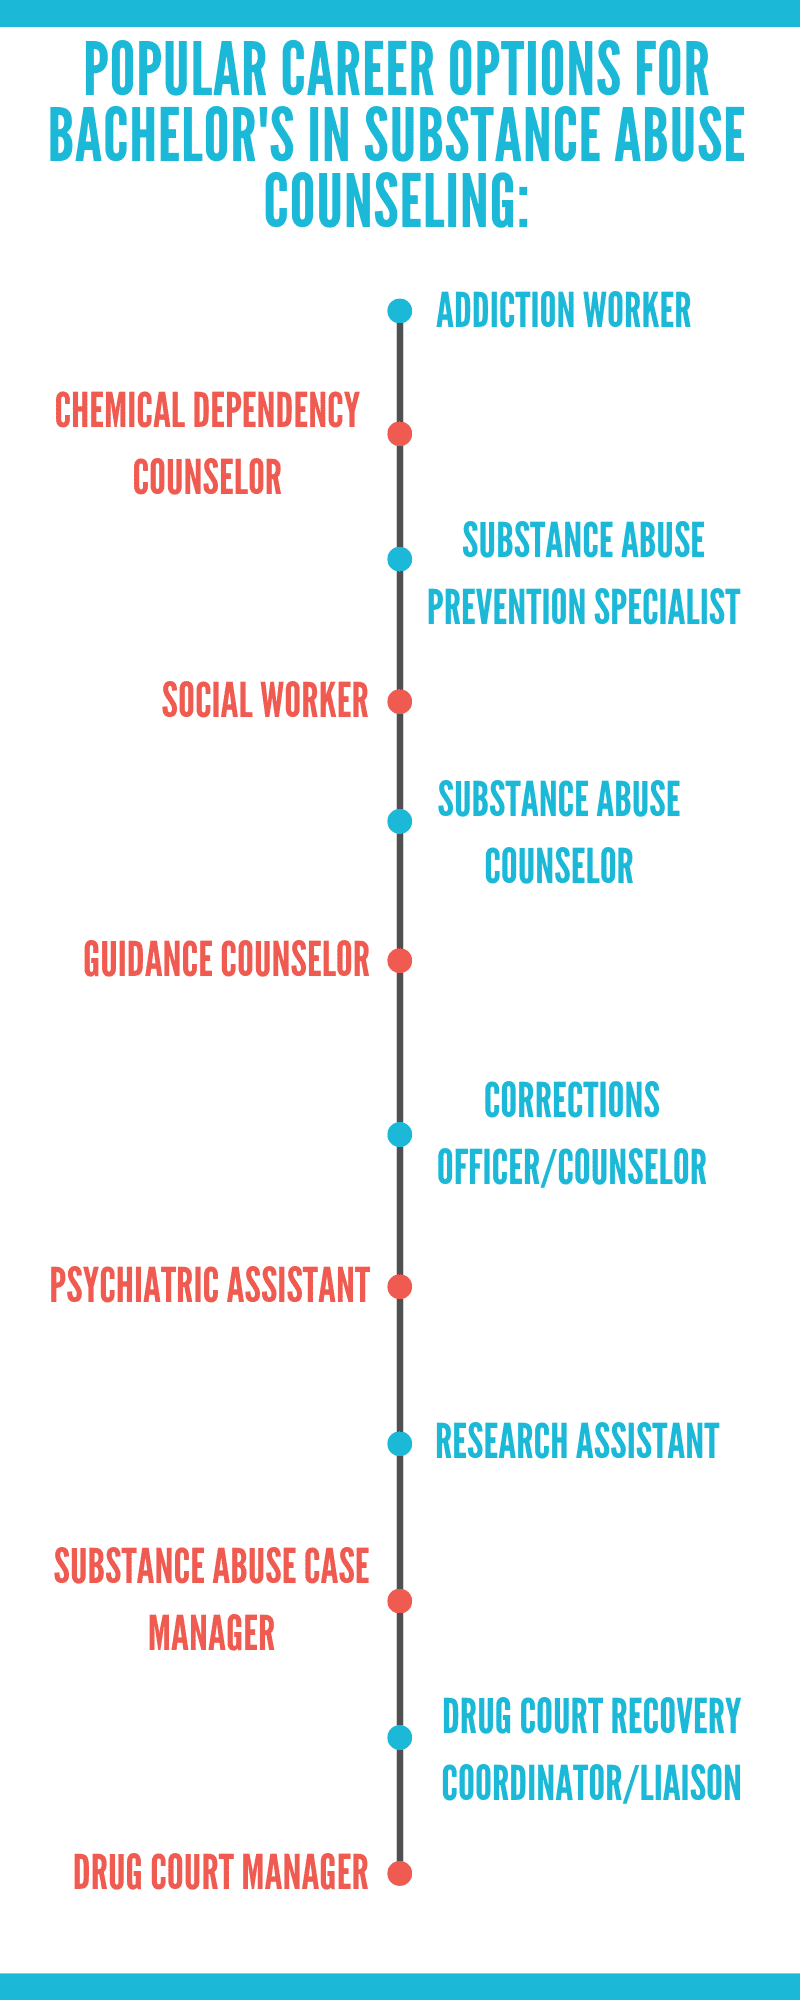 Substance Abuse Counseling careeer options